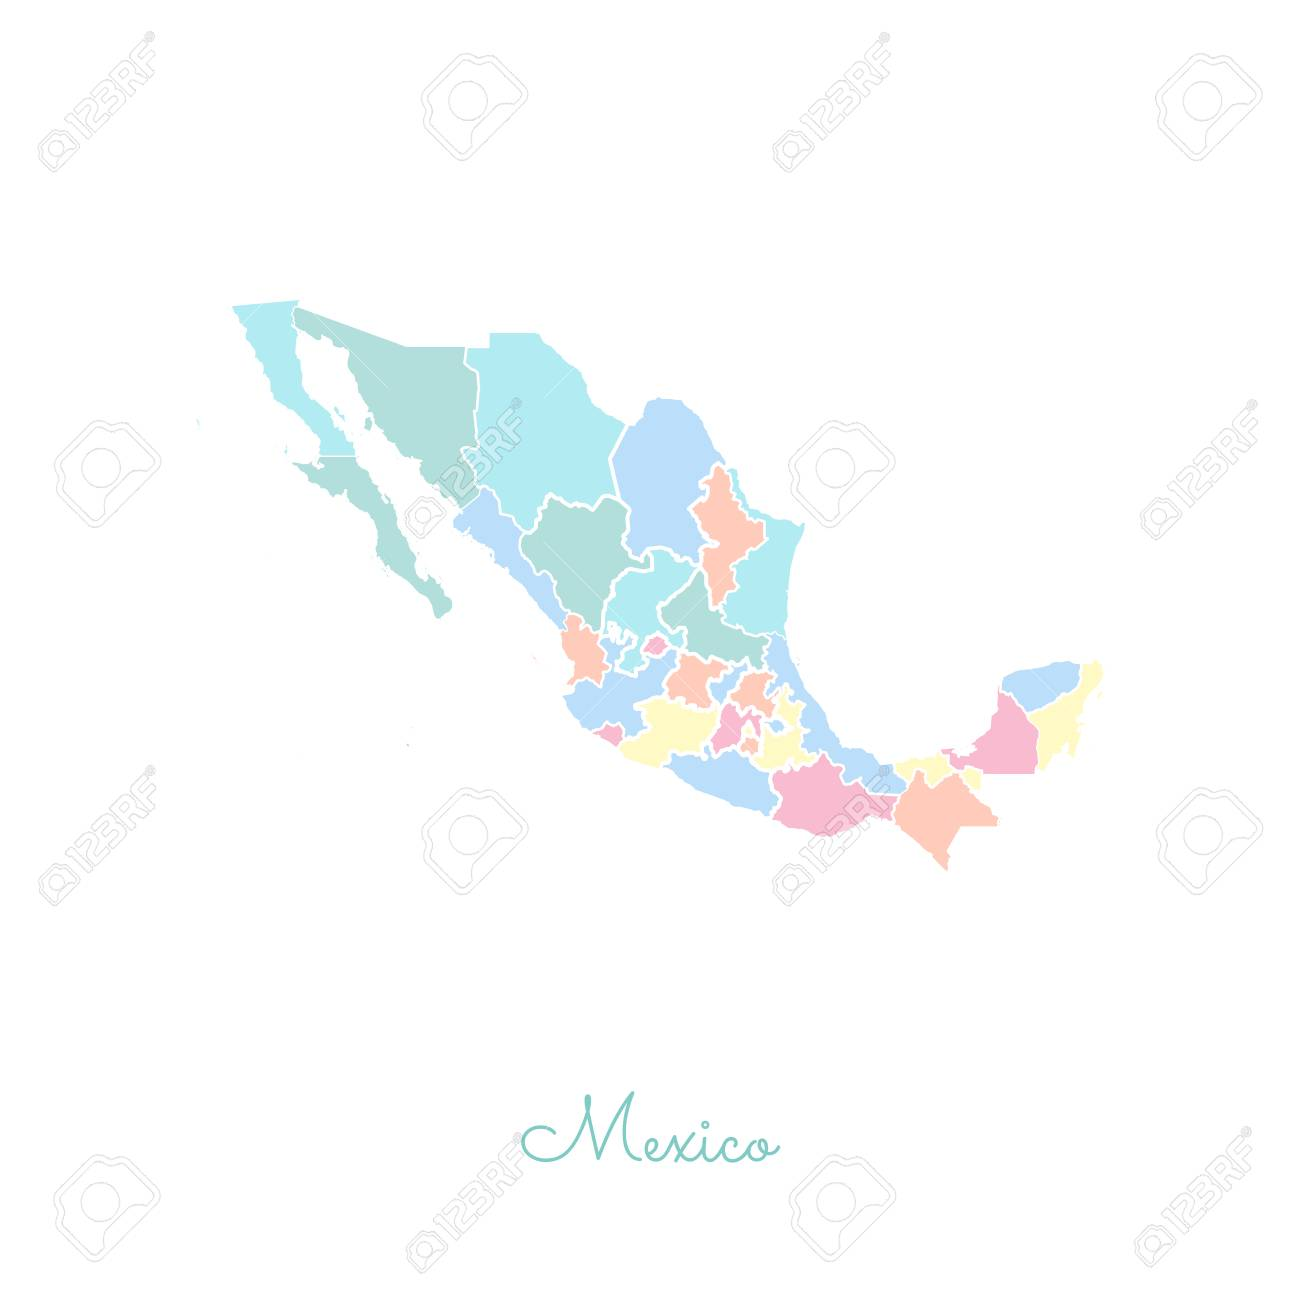 Mexico region map: colorful with white outline. Detailed map..